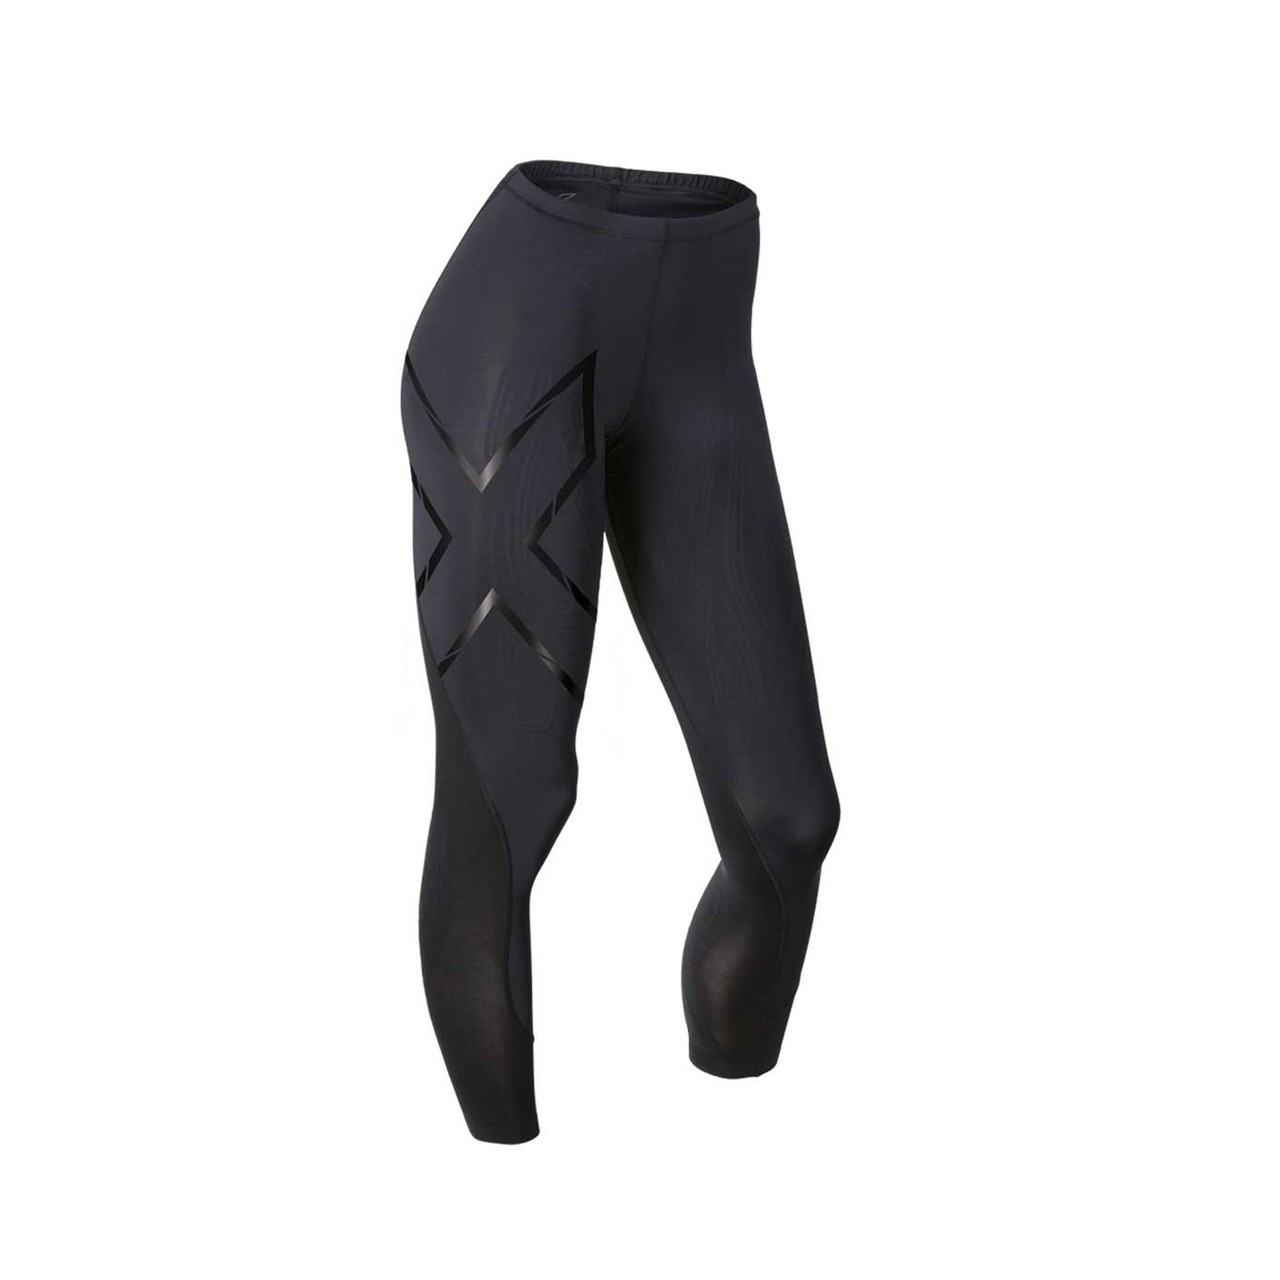 2XU Women's Elite MCS Compression Tights - 2018 price